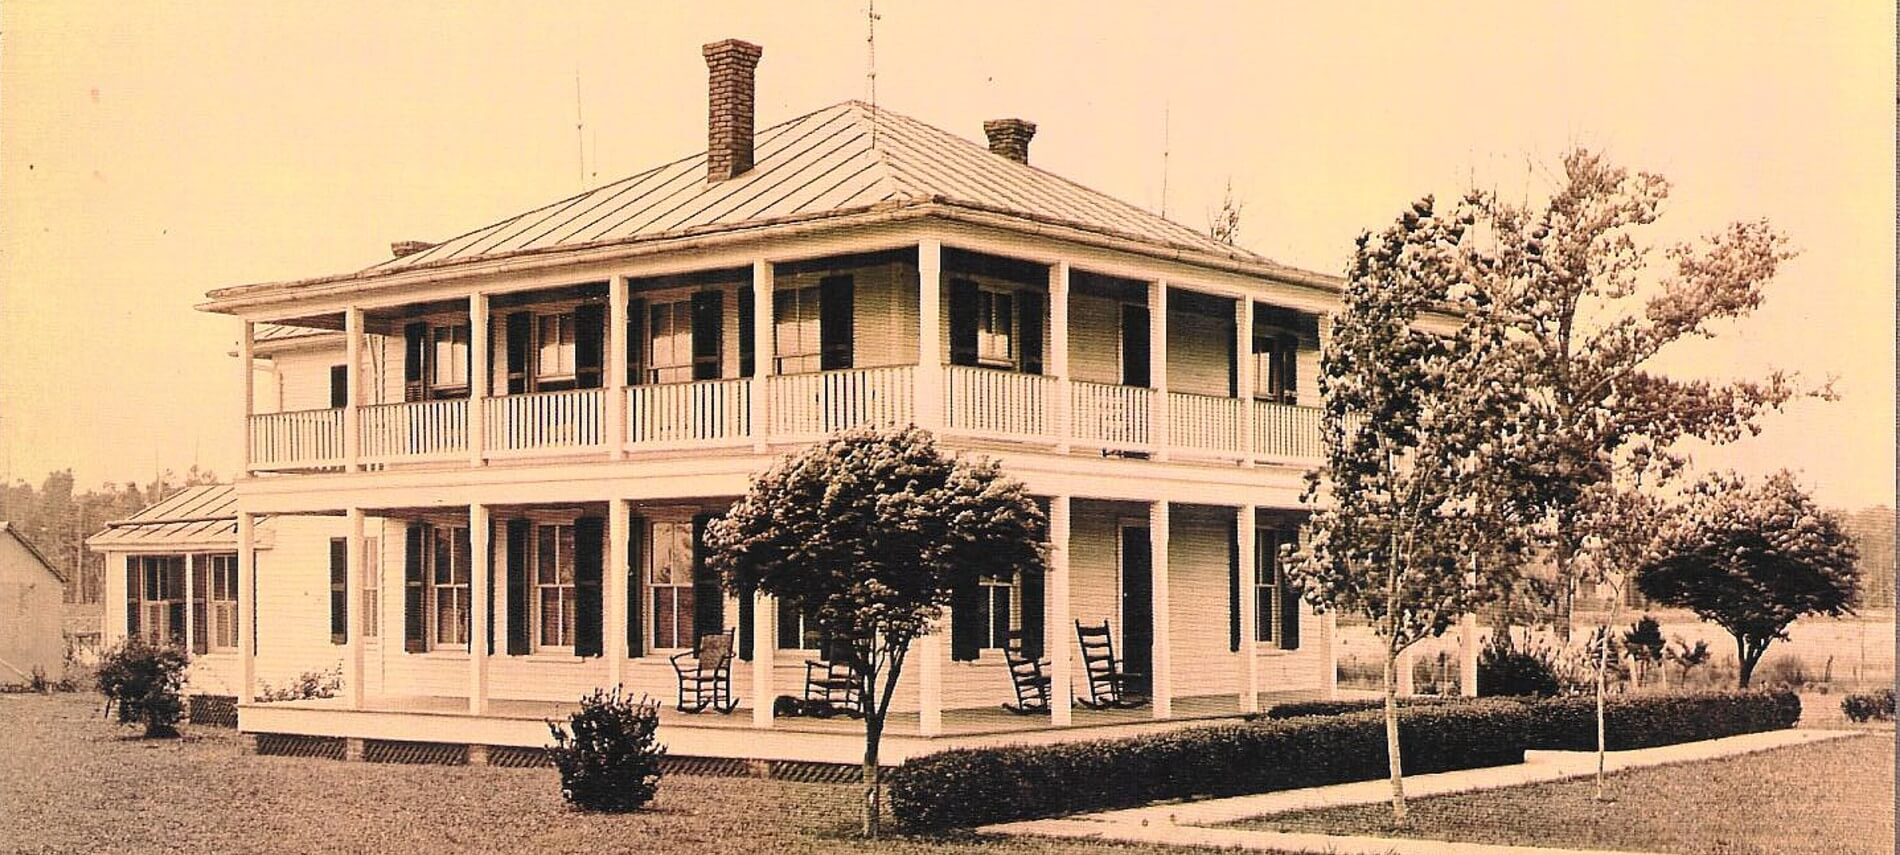 Sepia toned photo of Barclay Cottage Bed & Breakfast in past times- large white home with two-story wrapped porch.